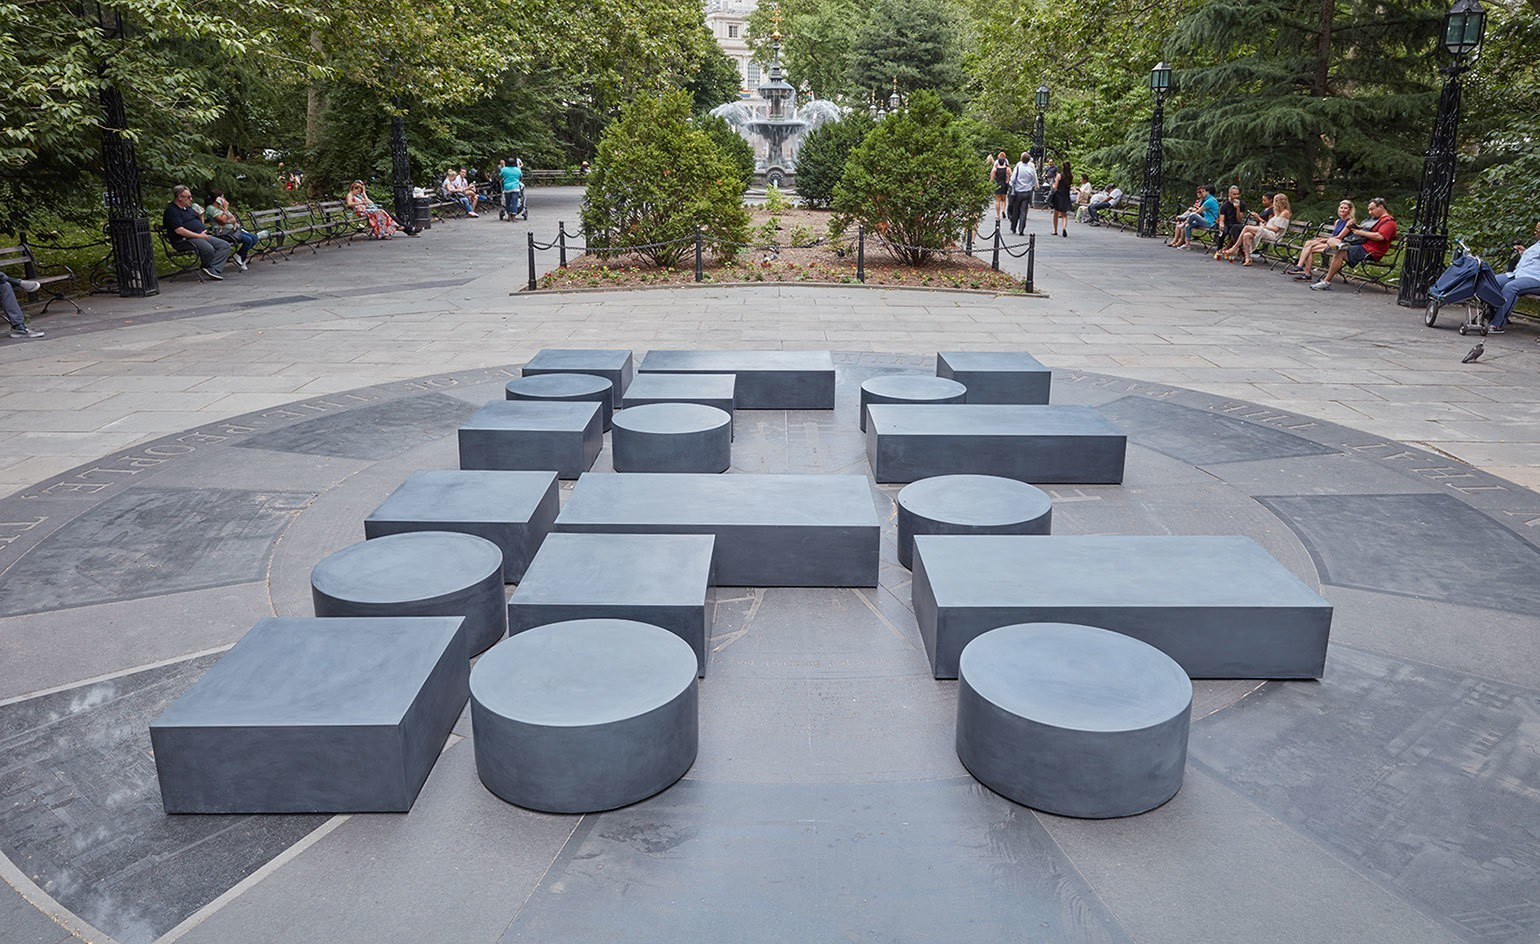 Street talk: an exhibition of language-inspired sculpture takes over New York's City Hall Park